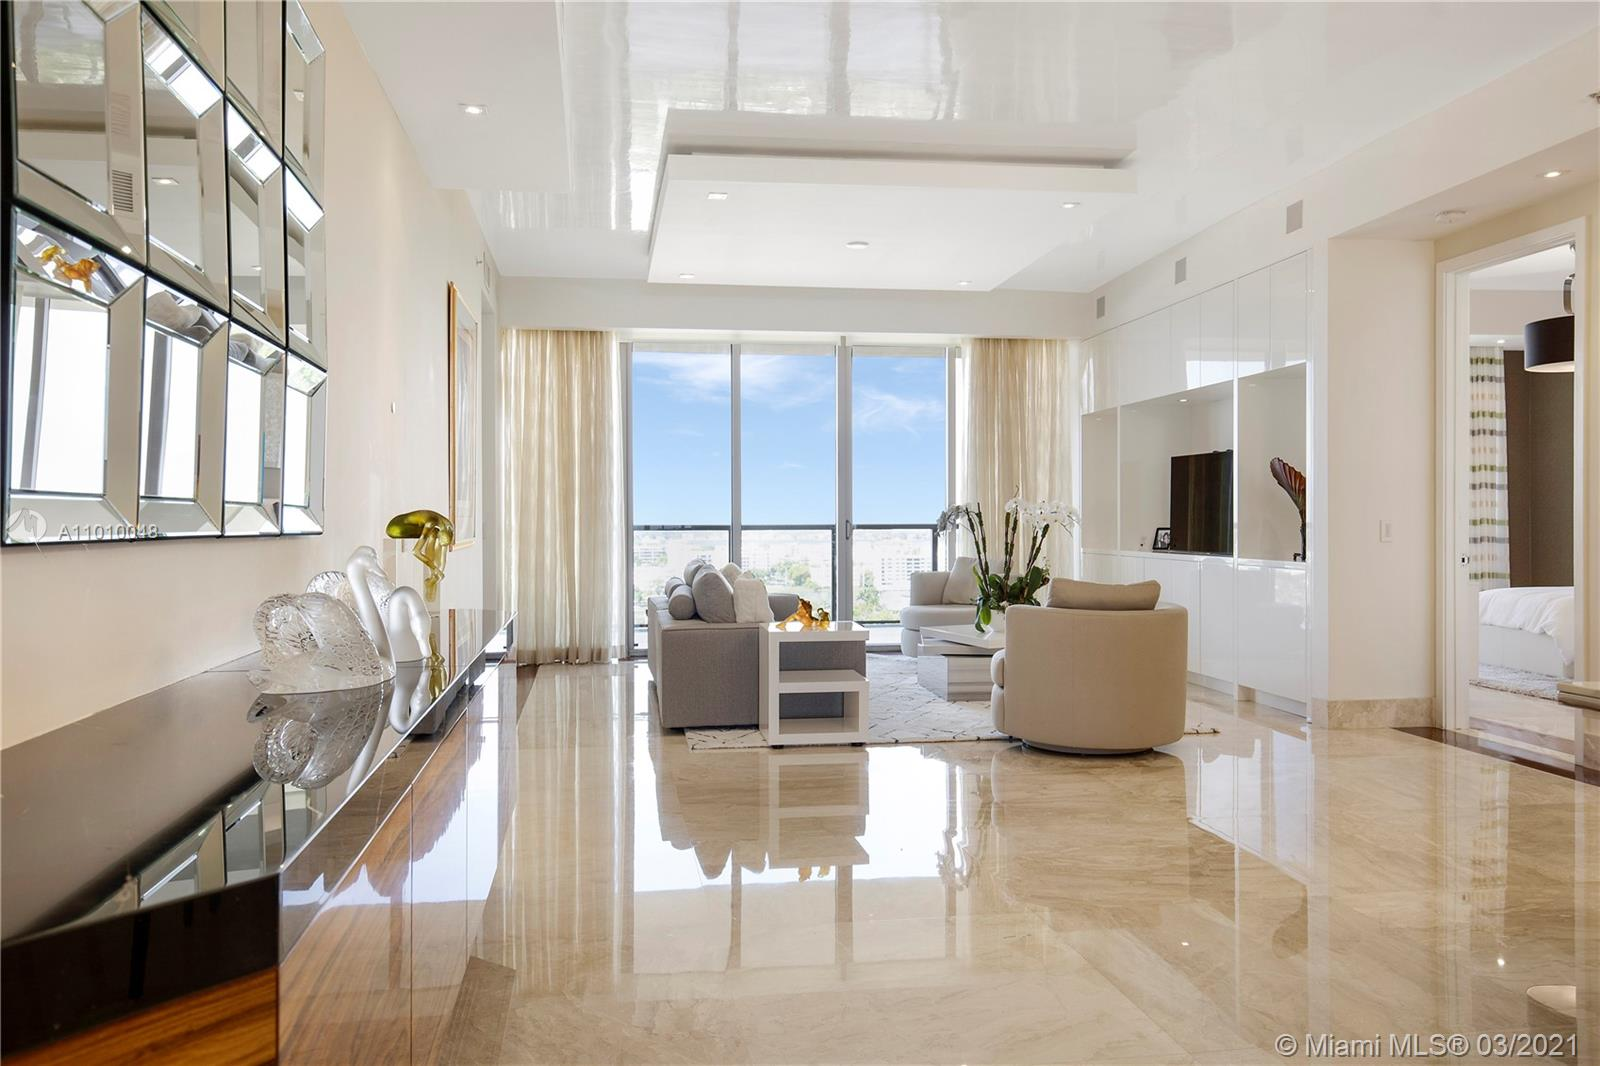 Immaculate oceanfront residence at the iconic St. Regis Bal Harbour now available for those looking for a great investment opportunity. No expense was spared. Exquisitely furnished with attention to detail. This beachfront paradise residence features 3 spacious bedroom plus 3 & 1/2 bathrooms, stunning direct ocean views plus breathtaking sunset views of intracoastal /city skyline. Meticulous designed and high end finishes throughout with top-of-the-line appliances. A true turn-key deal for your most discerning client. Tenant occupied. Best deal at St. Regis!